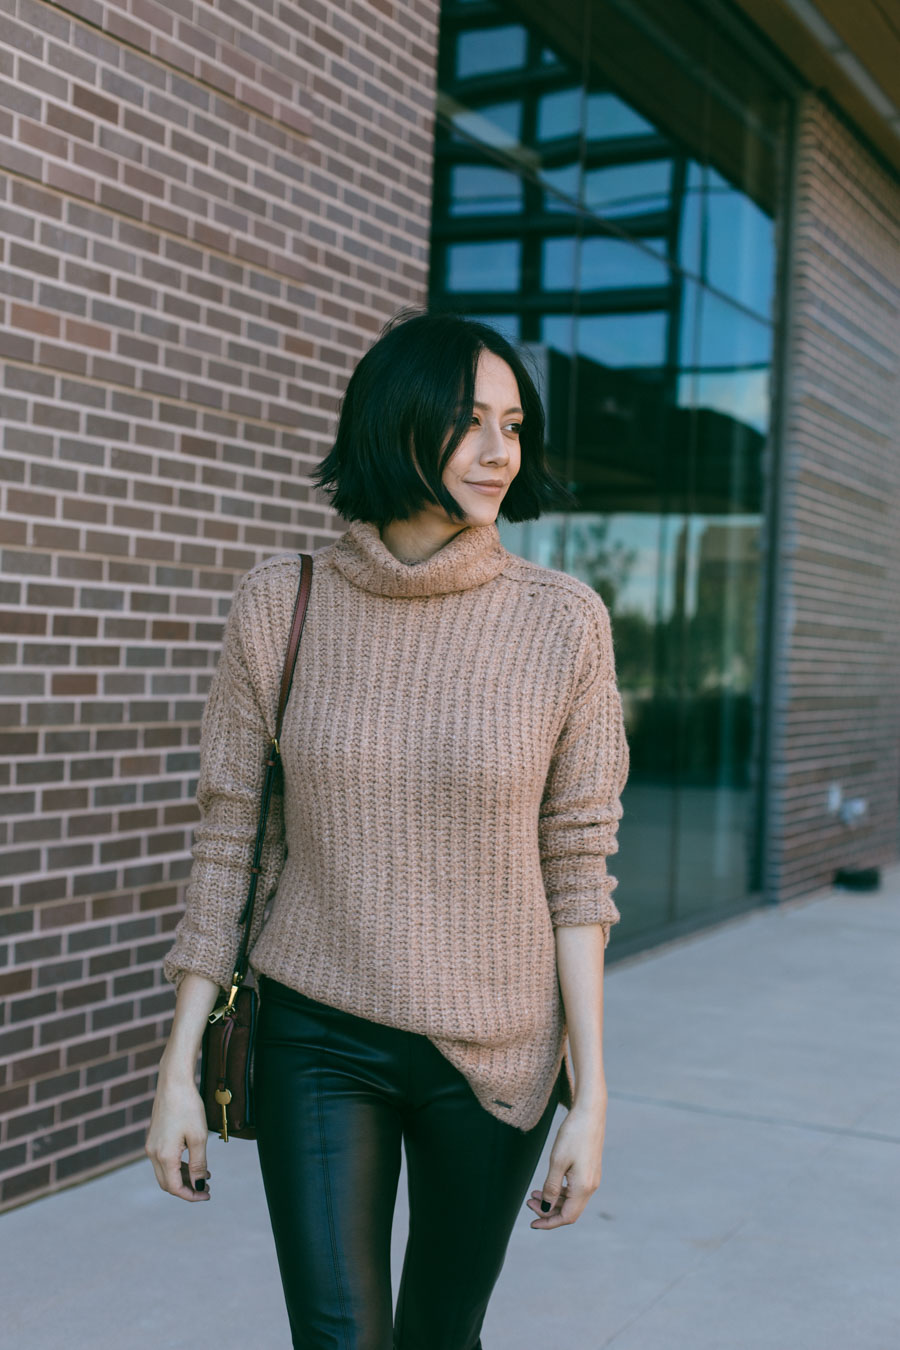 Style blogger Lilly Beltran wearing a tan chunky turtleneck sweater and faux leather pants for a chic fall outfit.